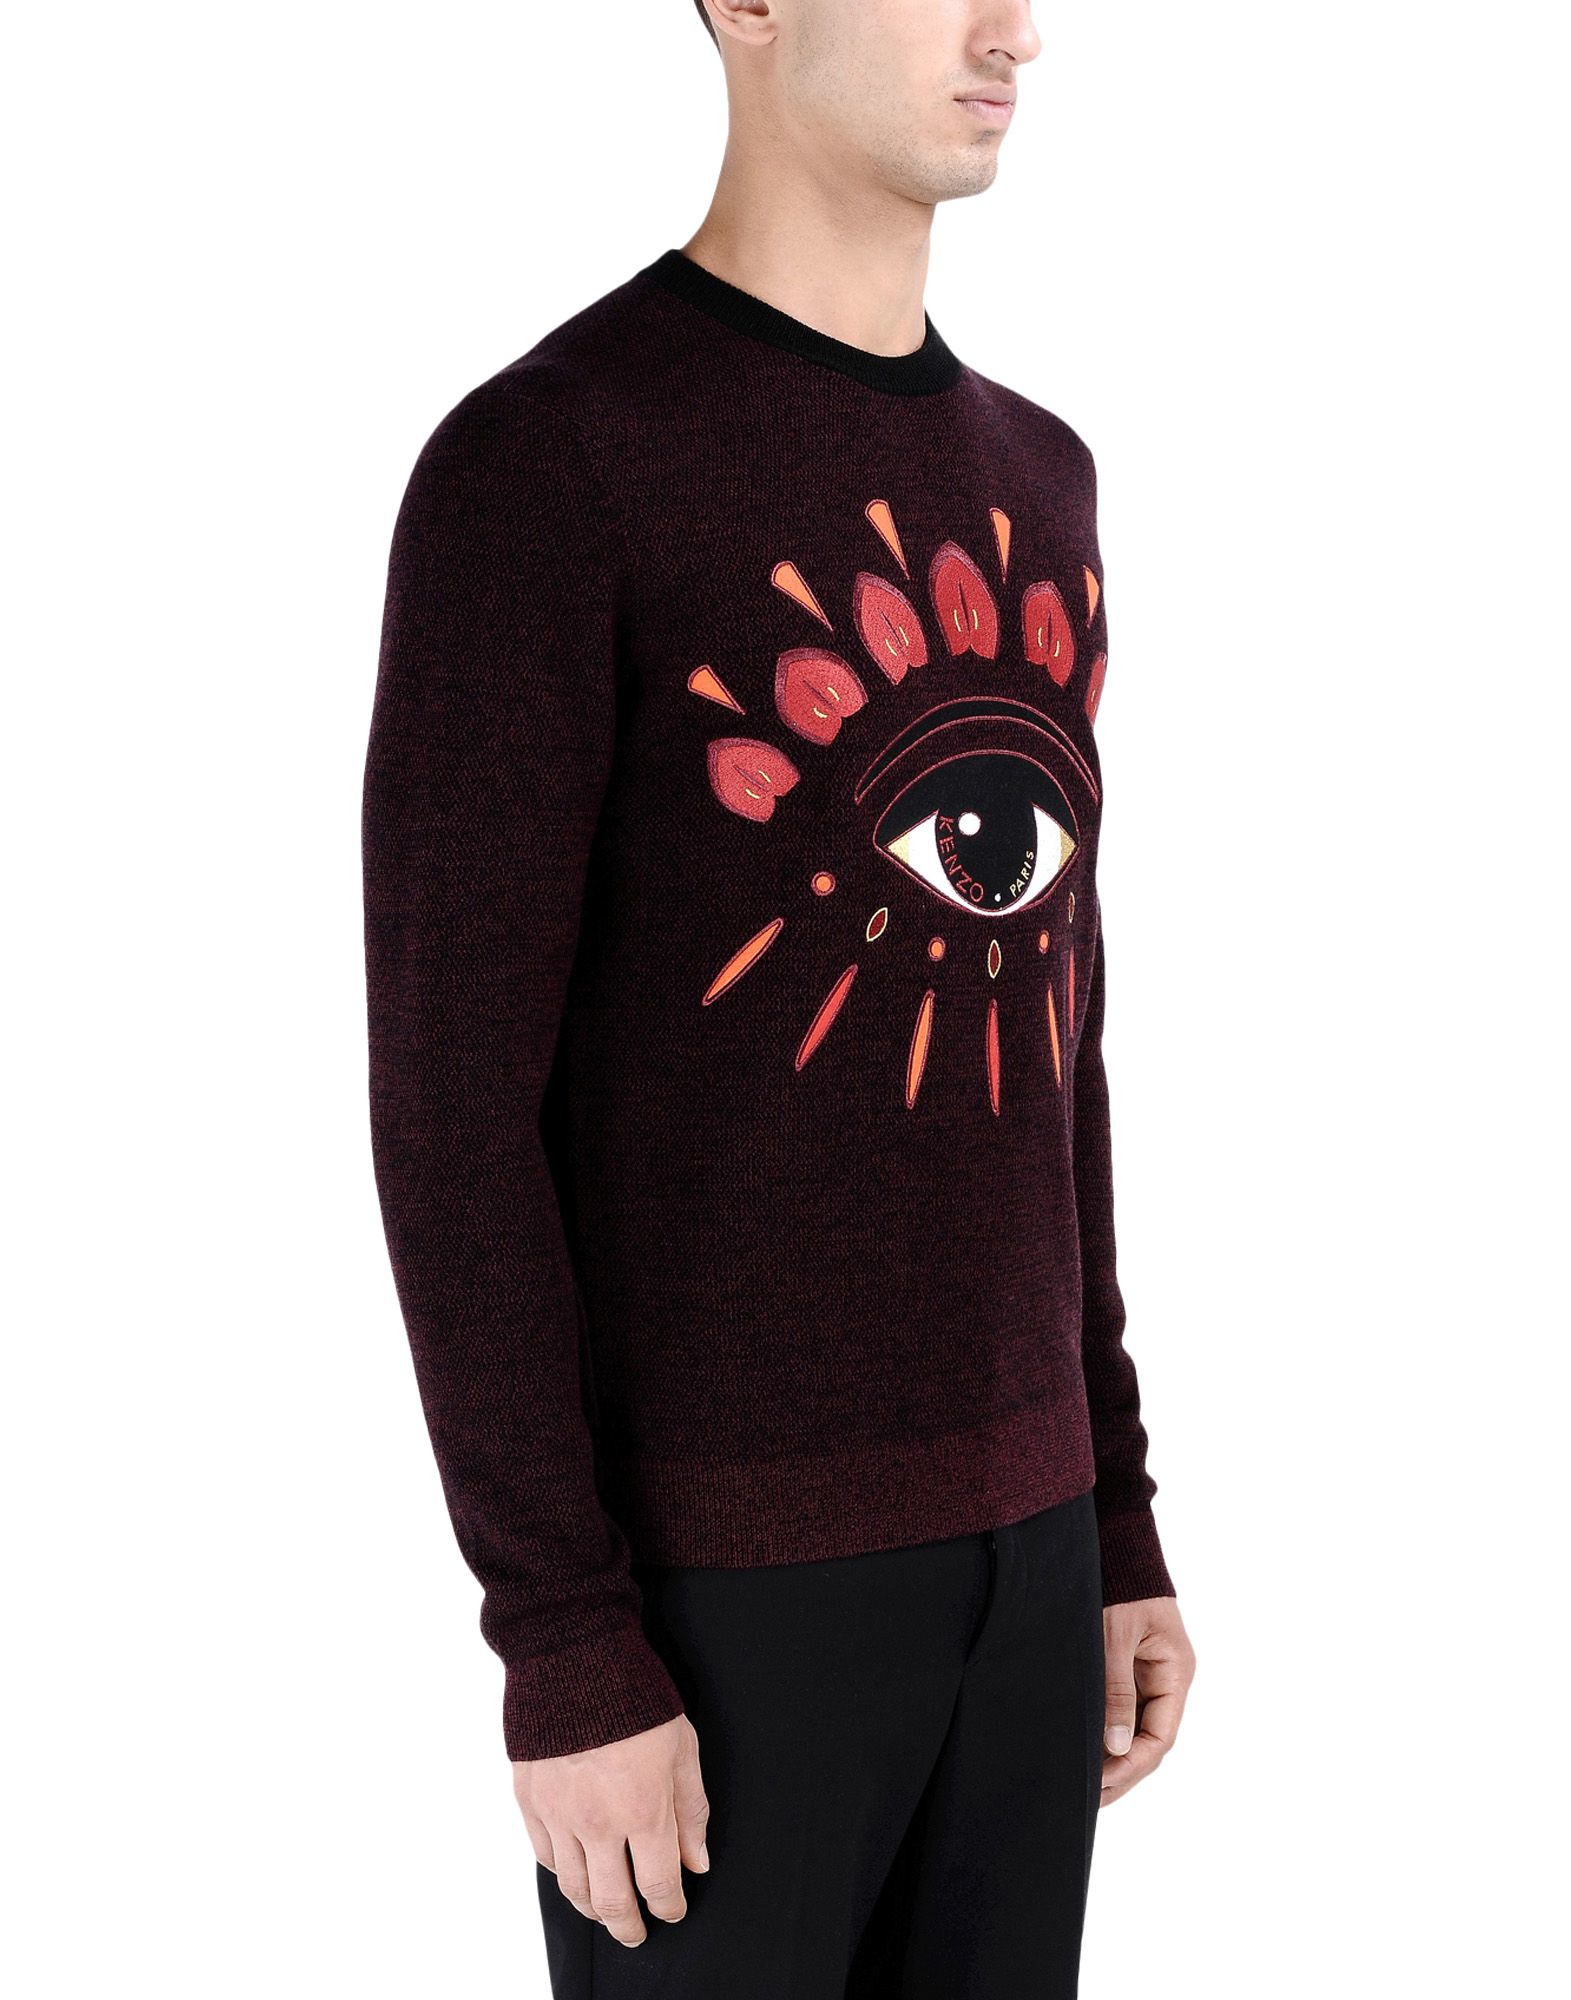 kenzo crewneck sweater in brown for men maroon lyst. Black Bedroom Furniture Sets. Home Design Ideas